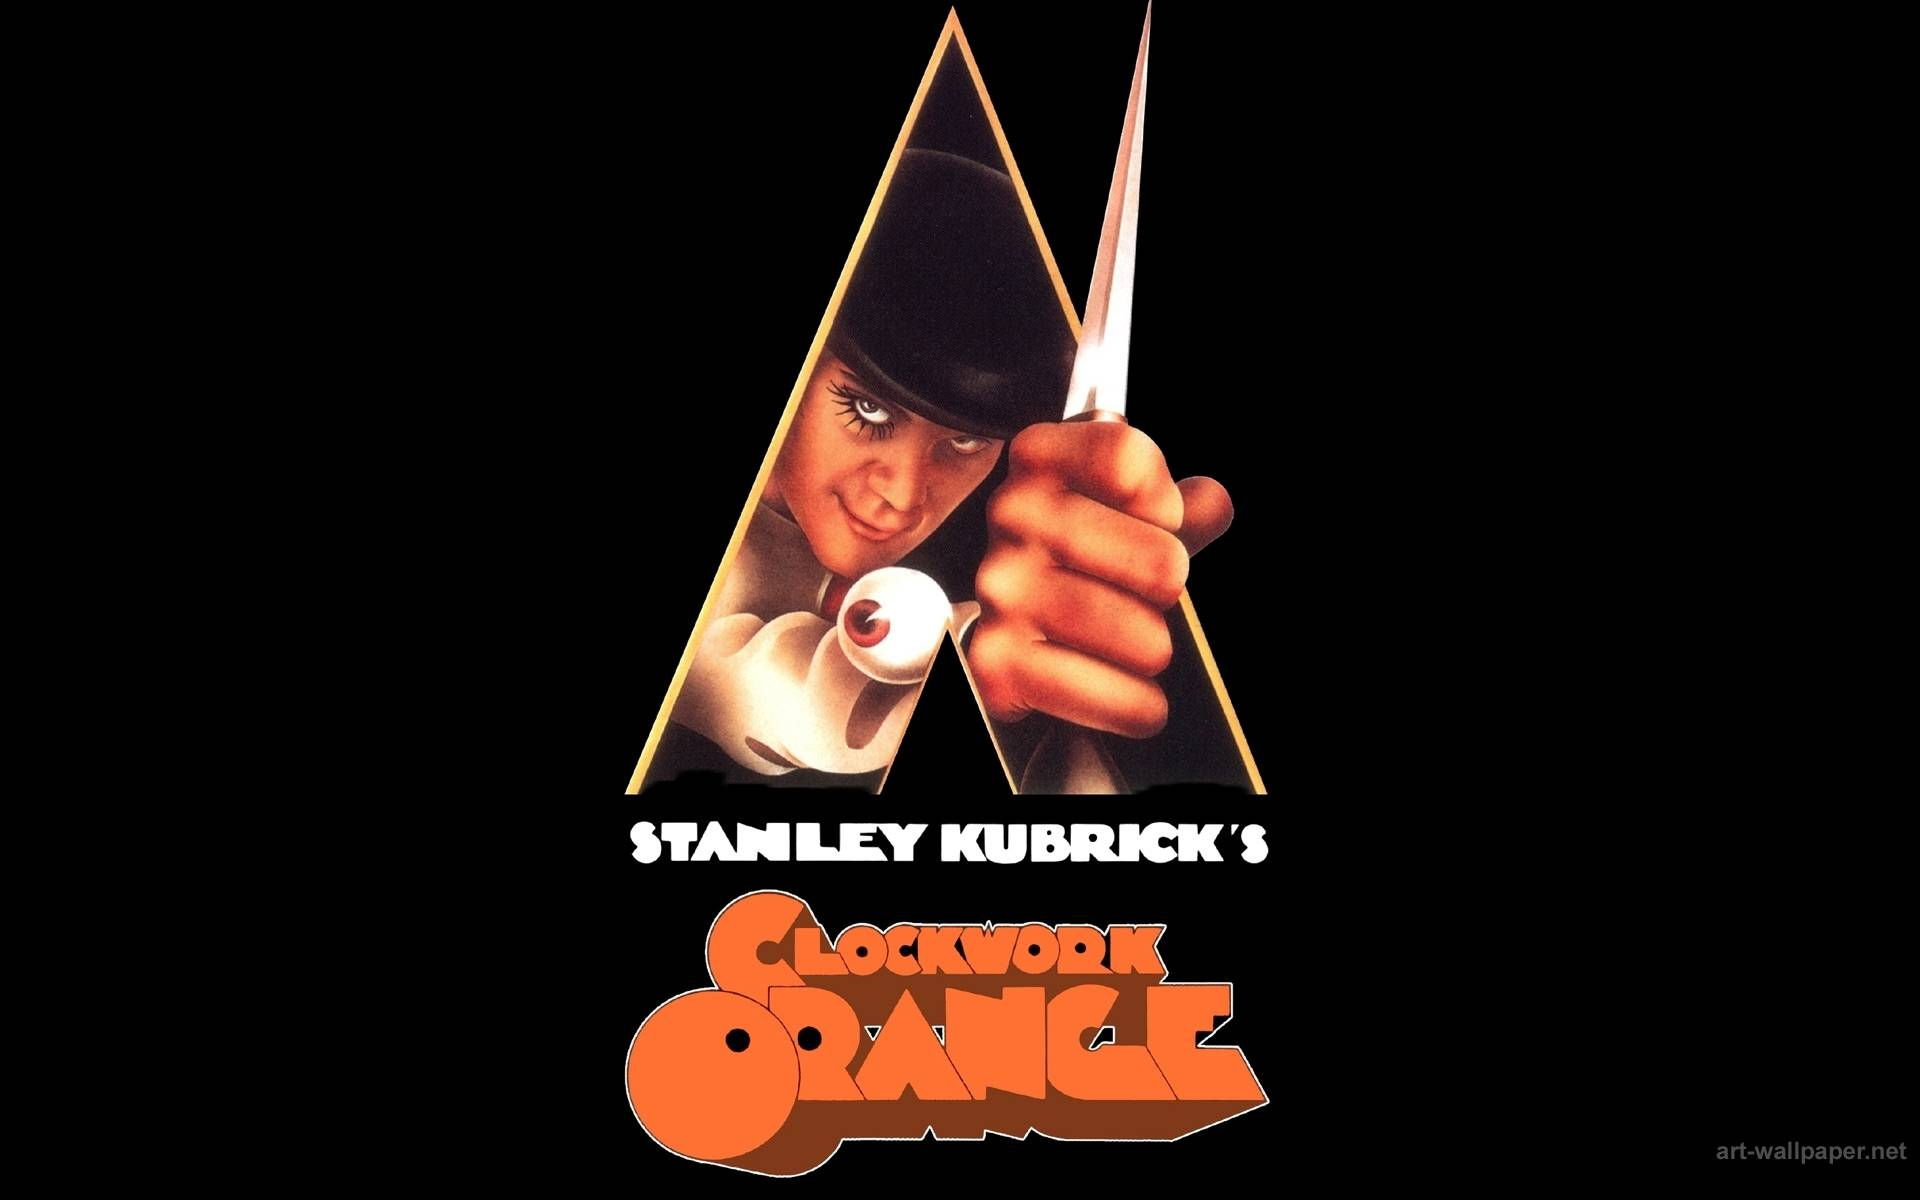 Stanley Kubrick Wallpapers - Wallpaper Cave A Clockwork Orange Wallpaper